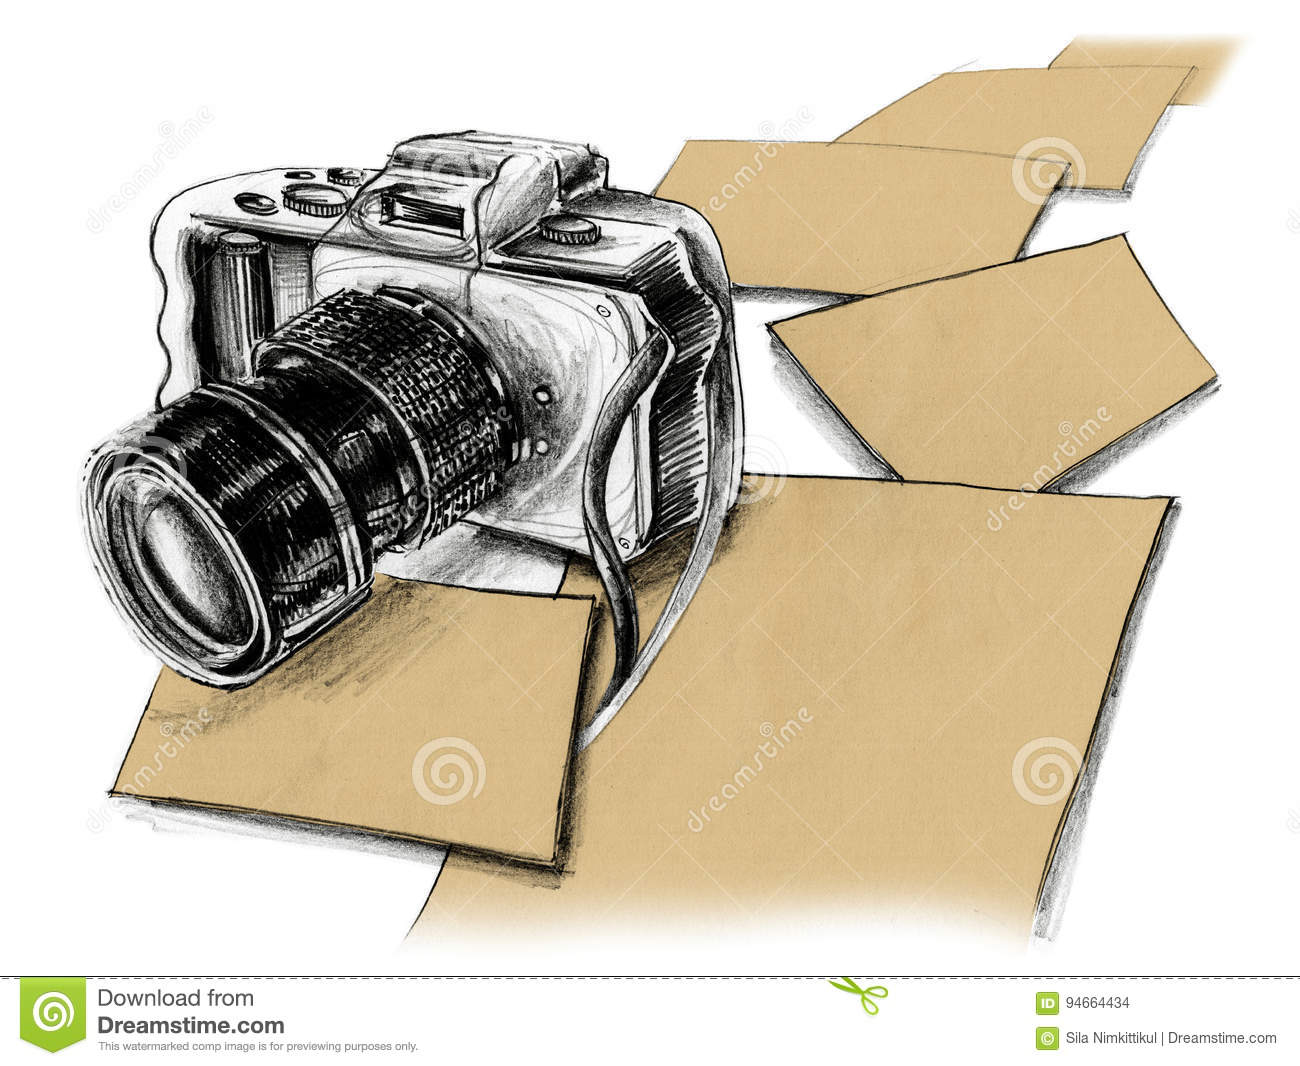 Mirrorless camera pencil sketch and paper free space